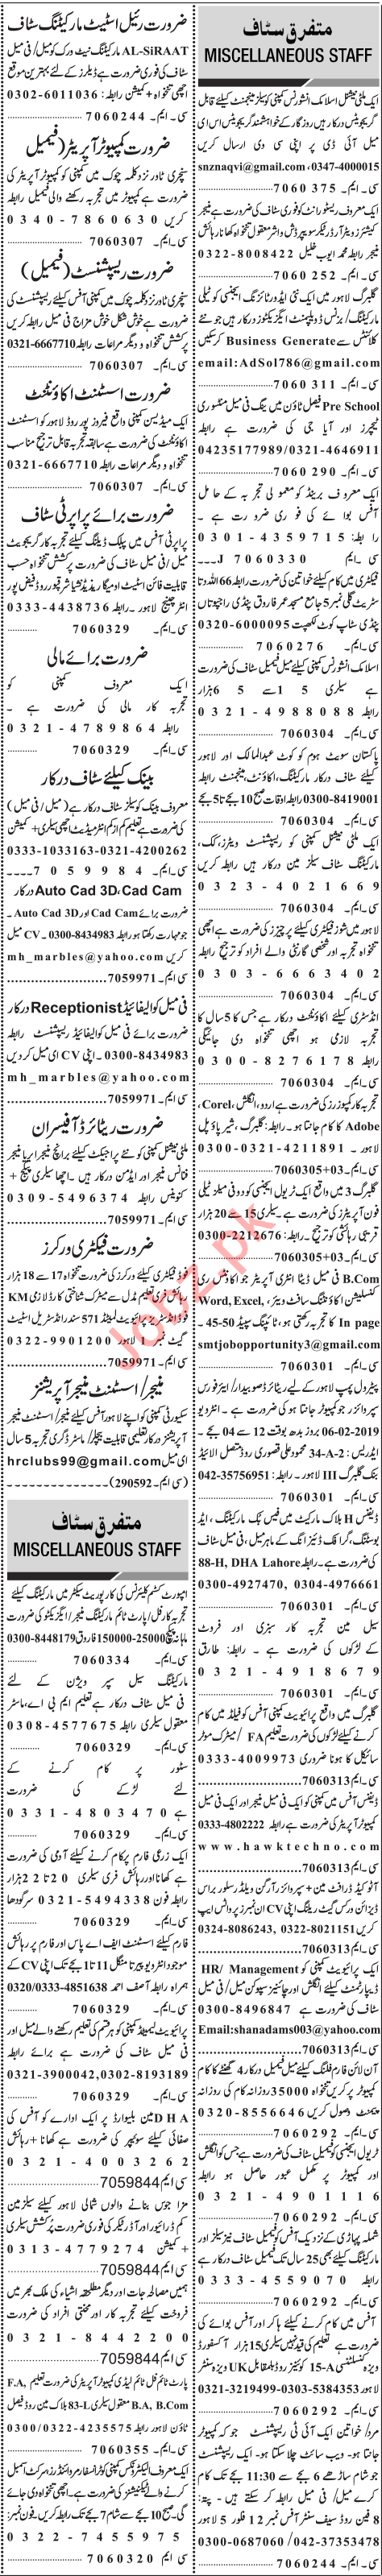 Jang Sunday Classified Ads 2nd Feb 2019 for General Staff